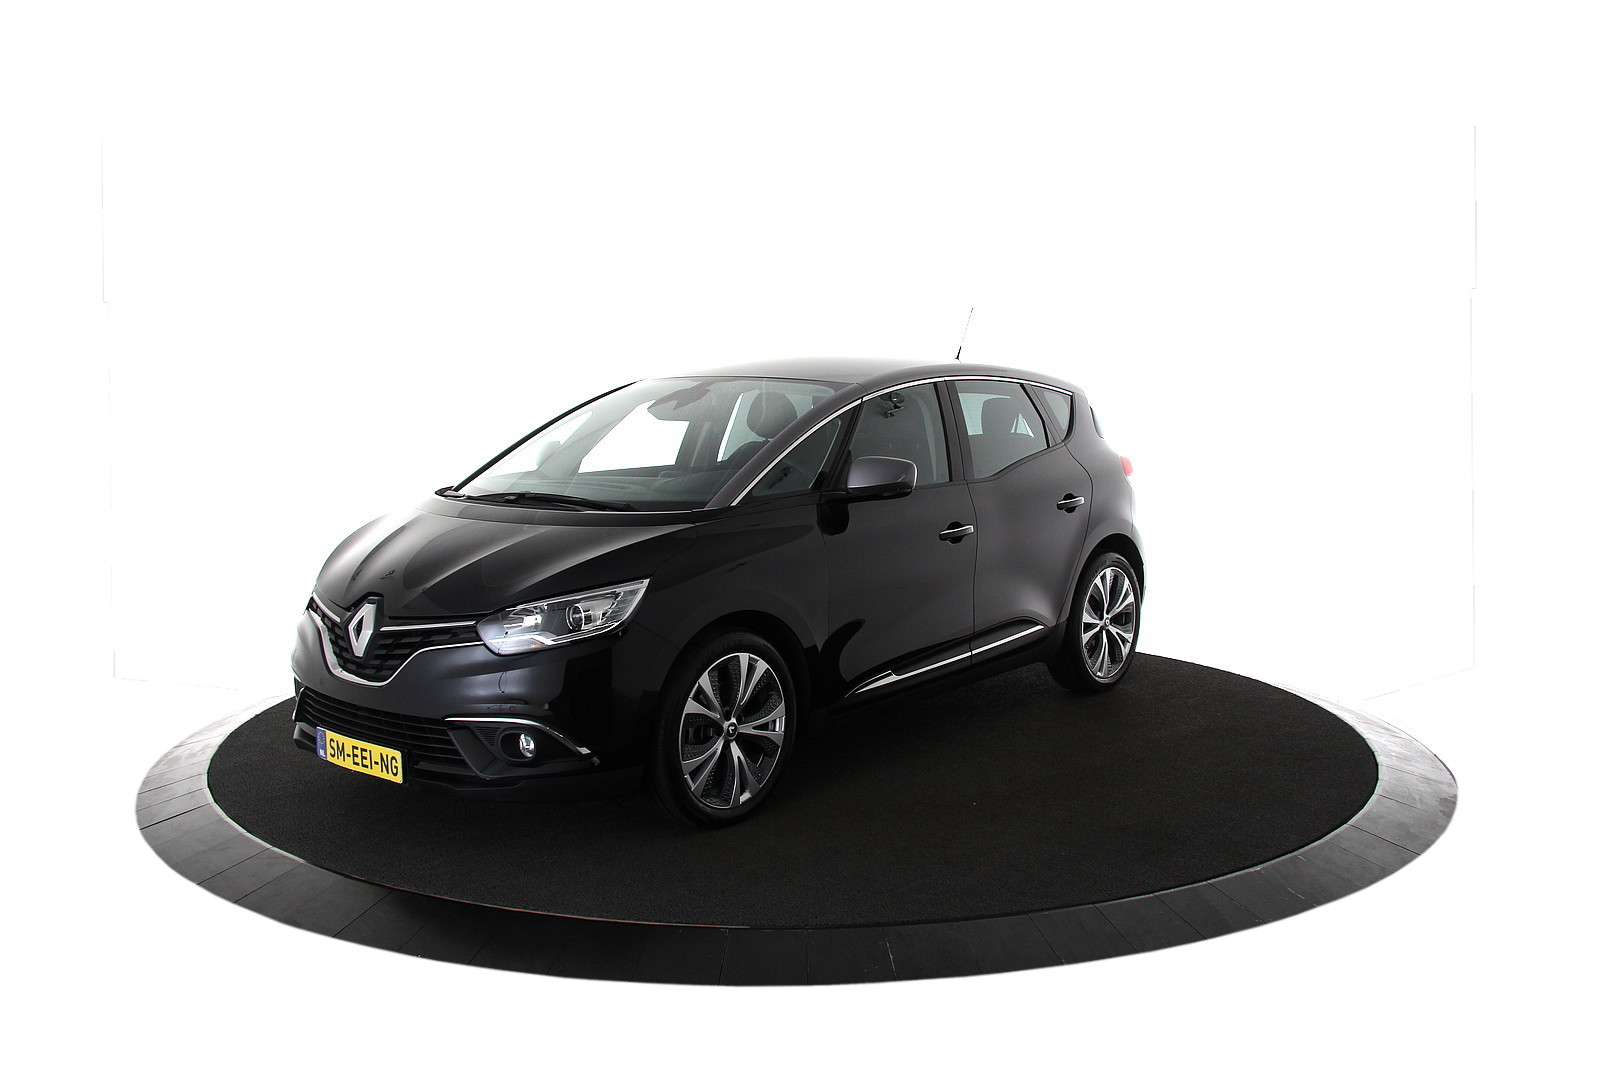 Renault Scénic 1.3 TCe Intens 163pk Automaat